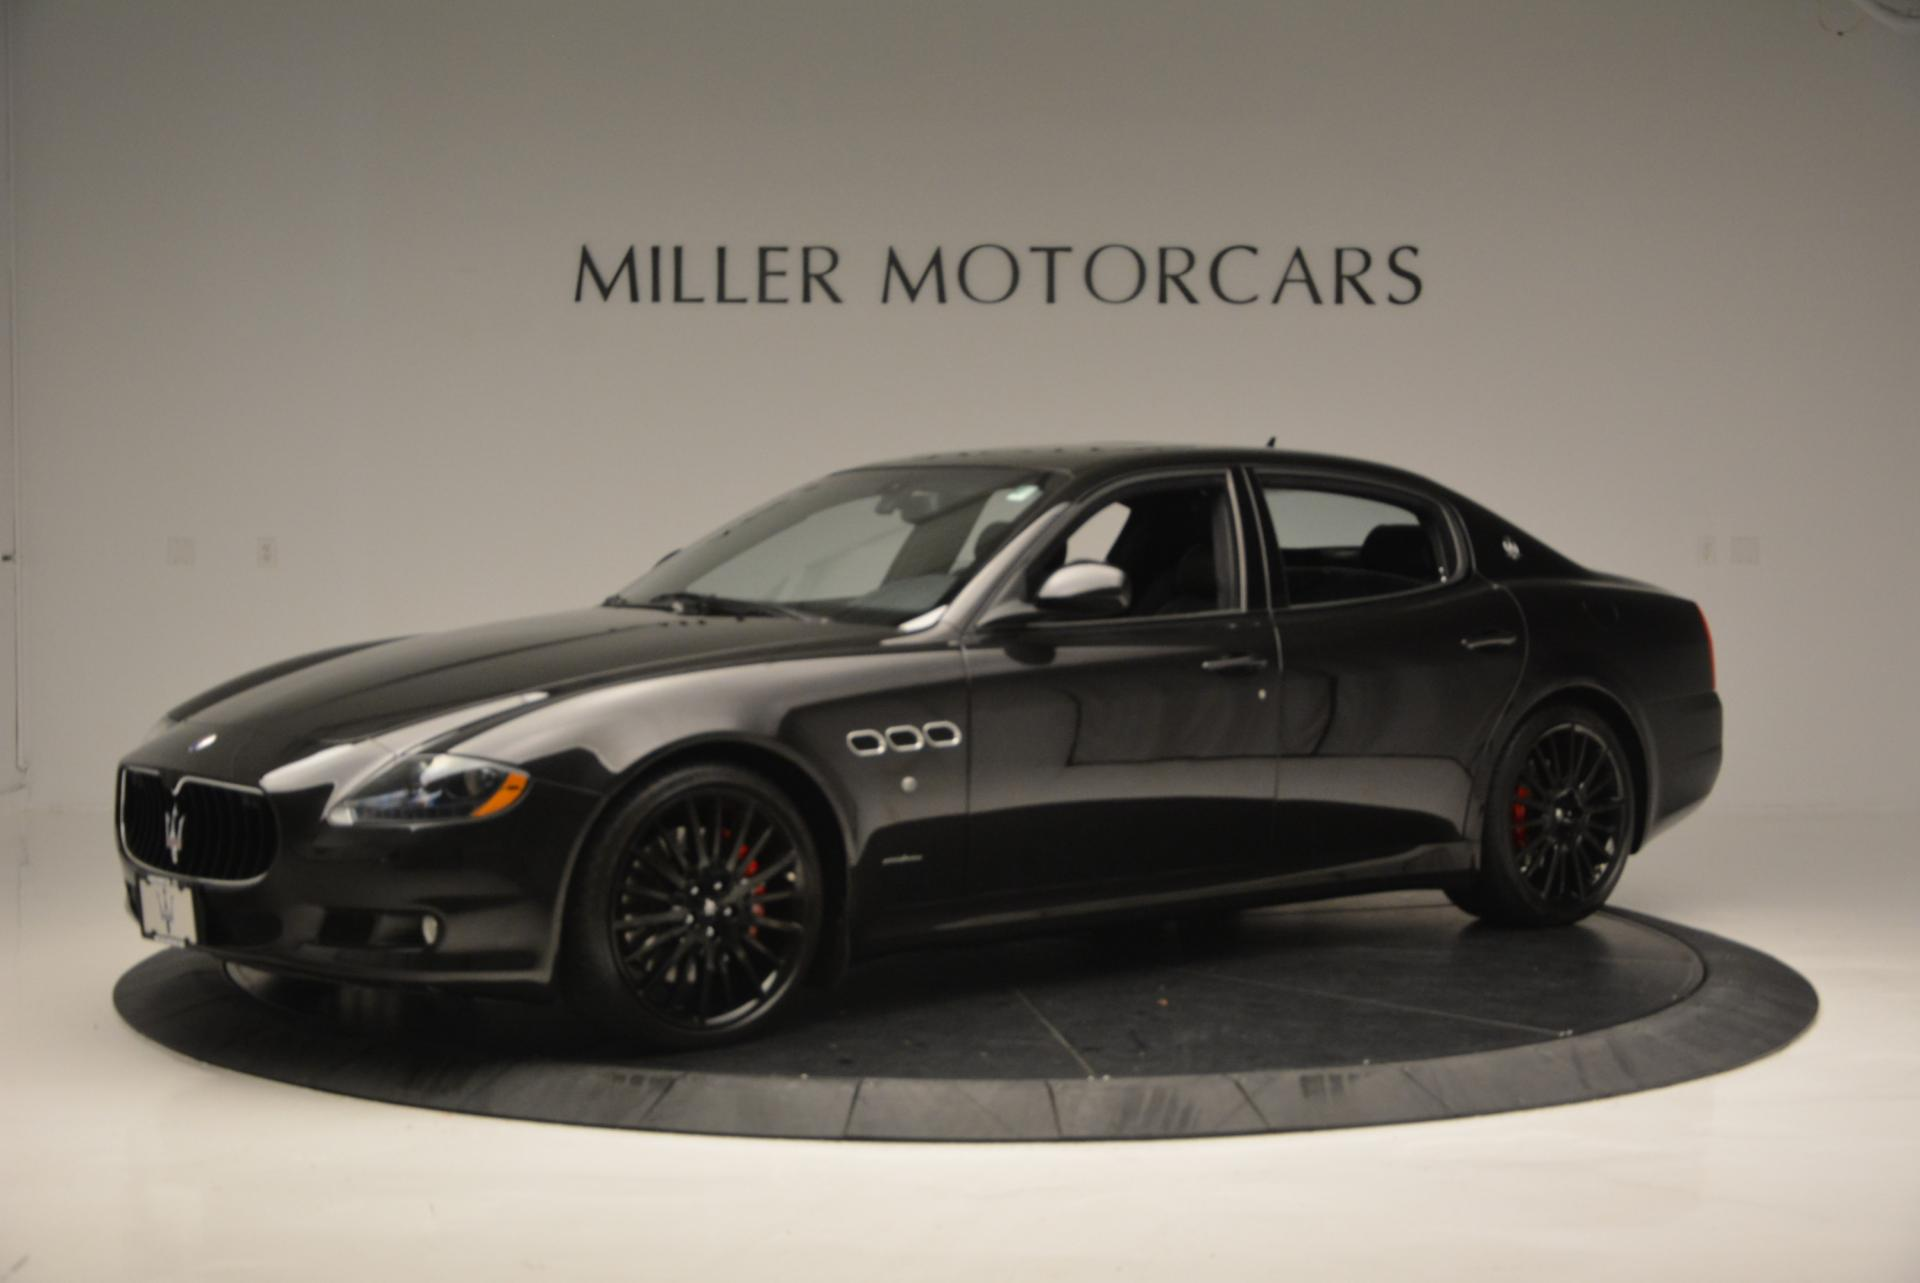 Used 2011 Maserati Quattroporte Sport GT S For Sale In Greenwich, CT. Alfa Romeo of Greenwich, 7080 531_p2